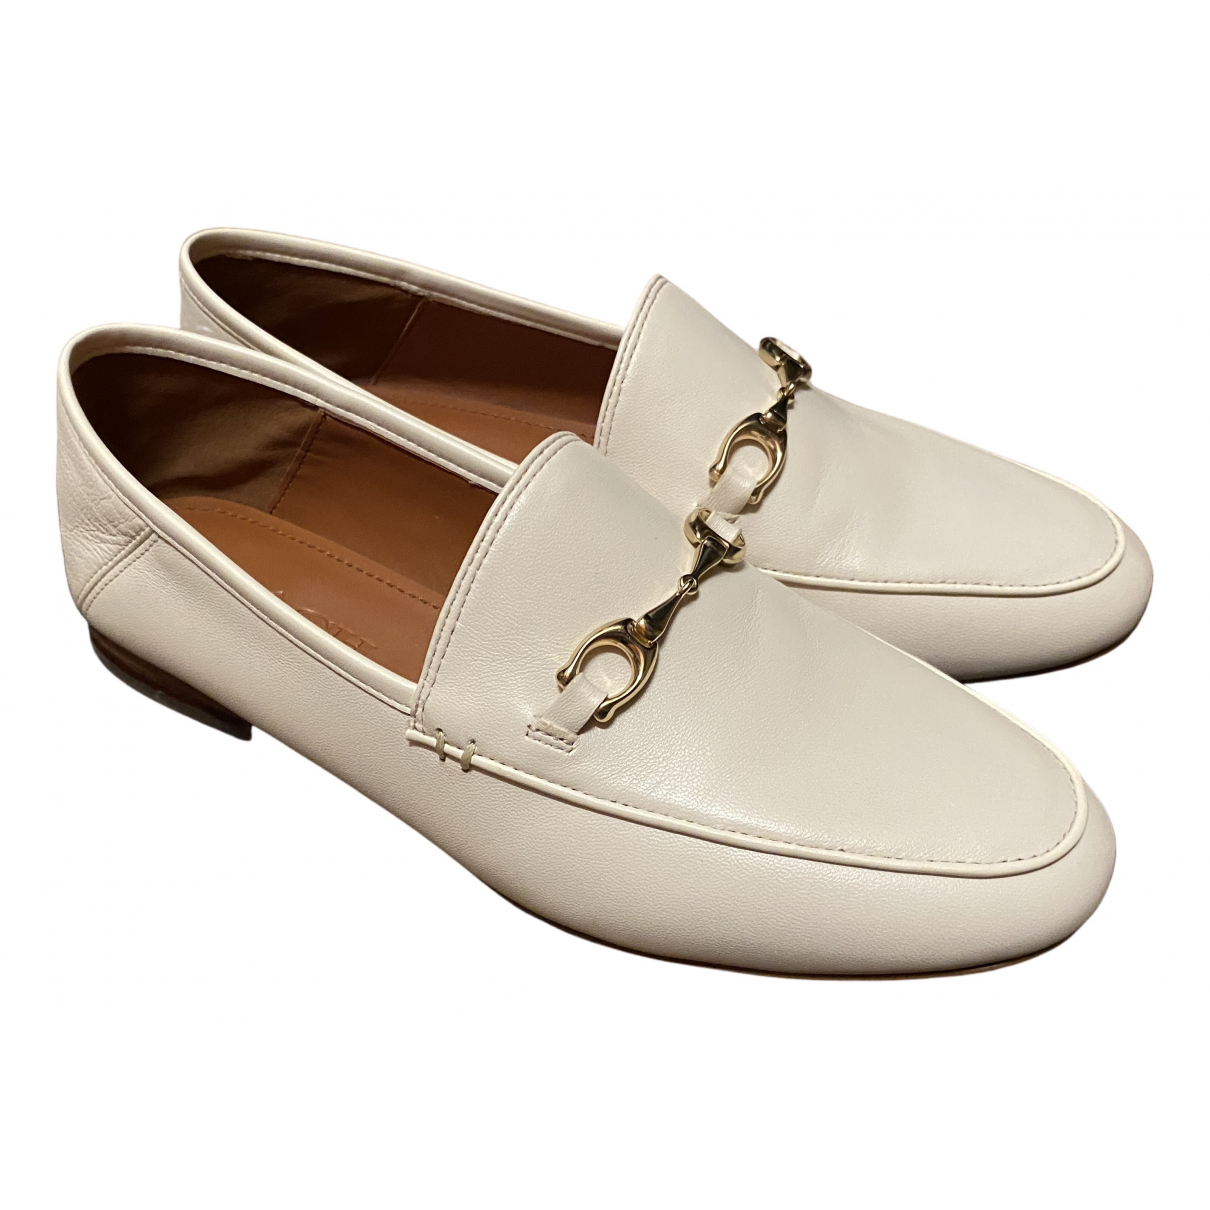 Coach N White Leather Flats for Women 5.5 US